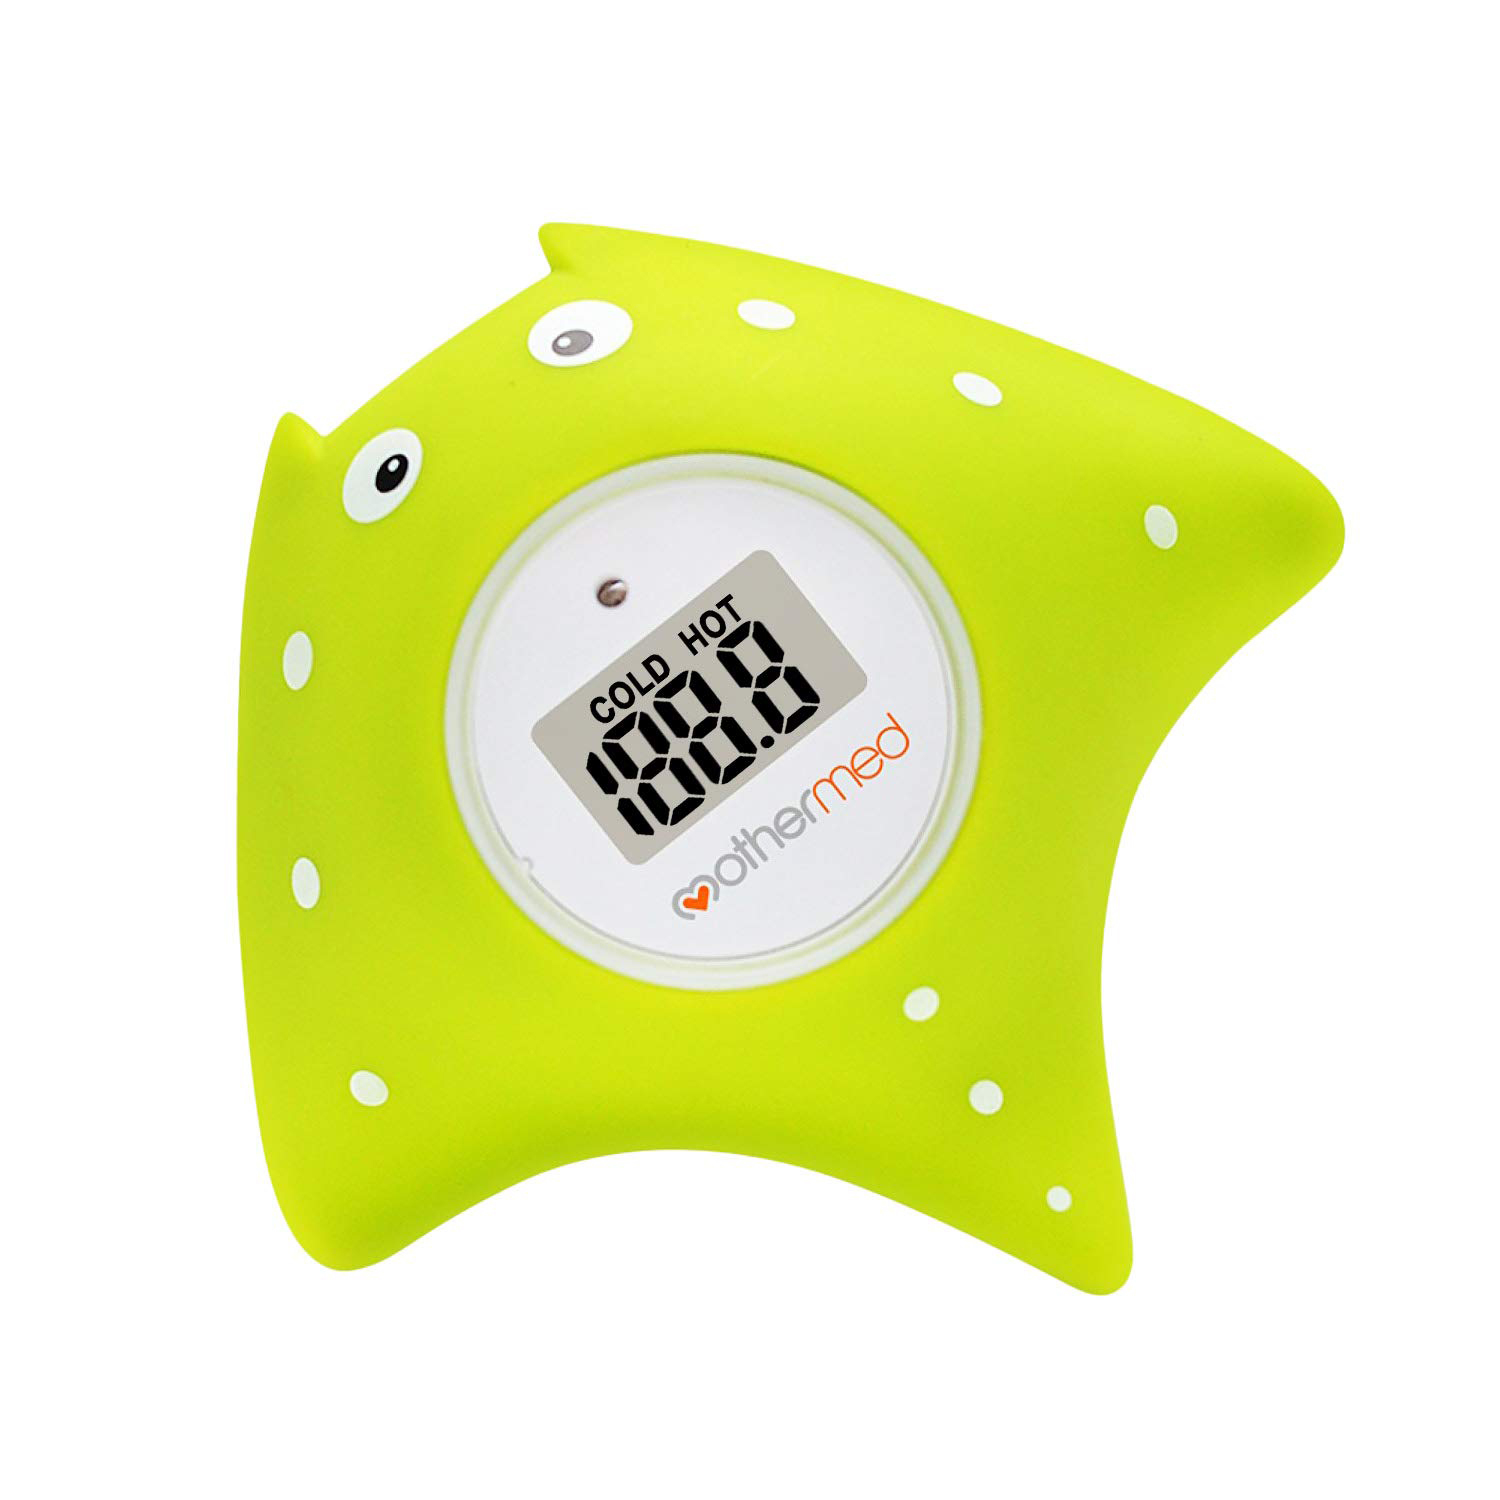 MotherMed Baby Bath Thermometer and Toy green photo